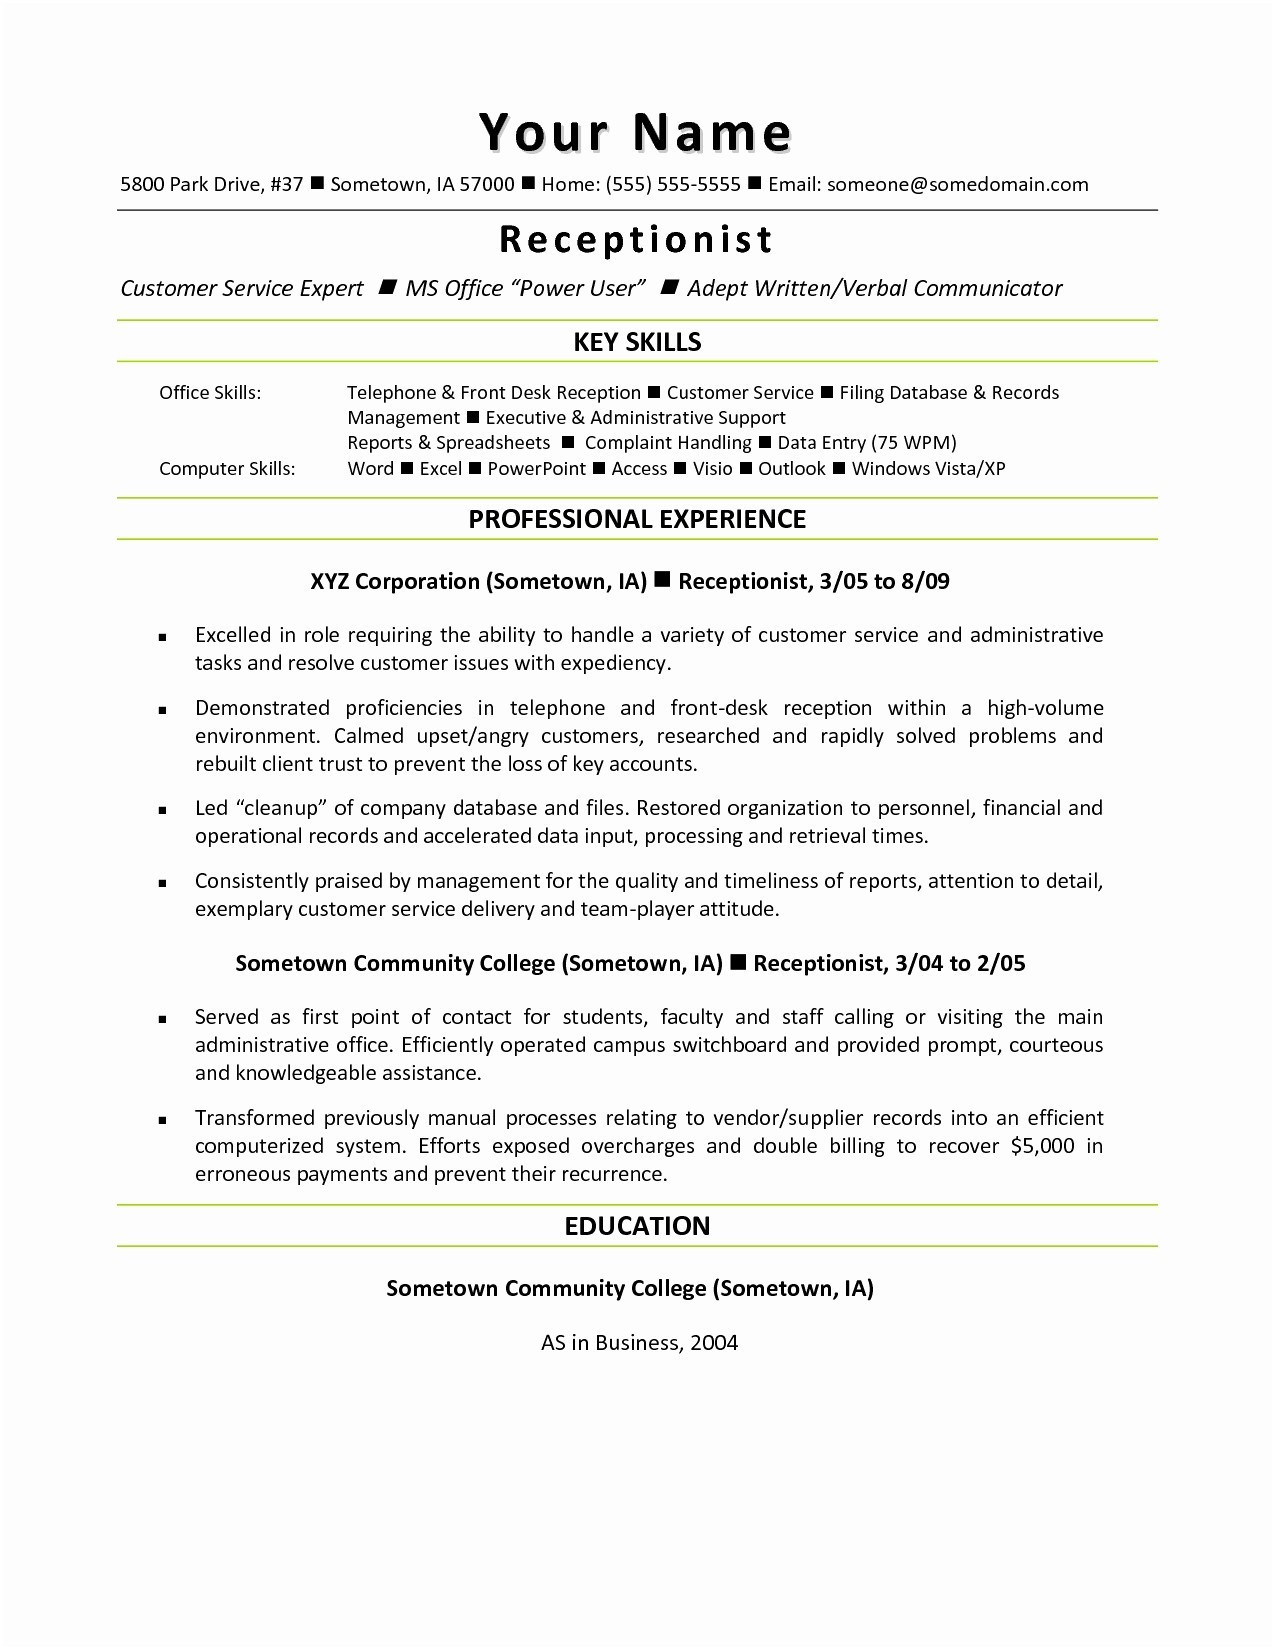 Cover Letter Template Microsoft Word 2010 Collection